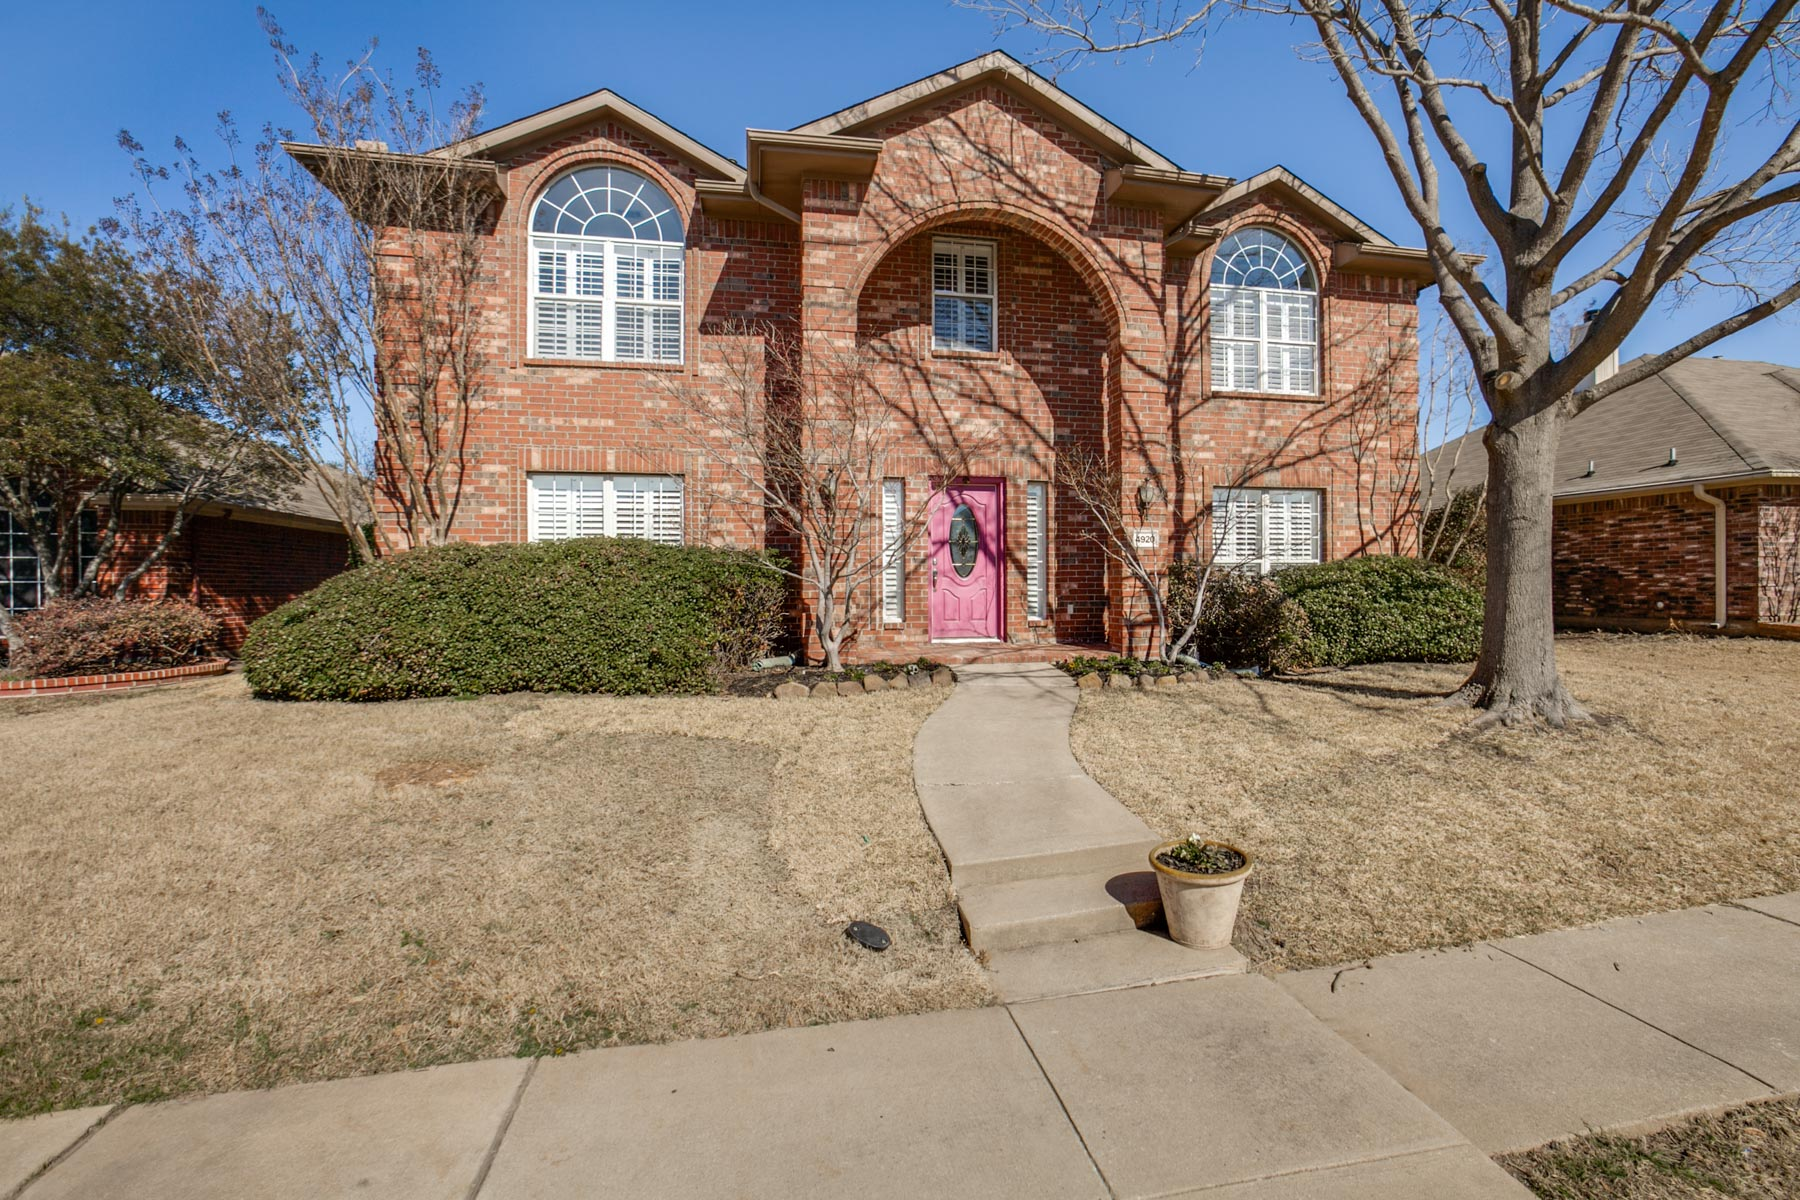 Single Family Home for Sale at 4920 Basil Dr, McKinney McKinney, Texas 75070 United States